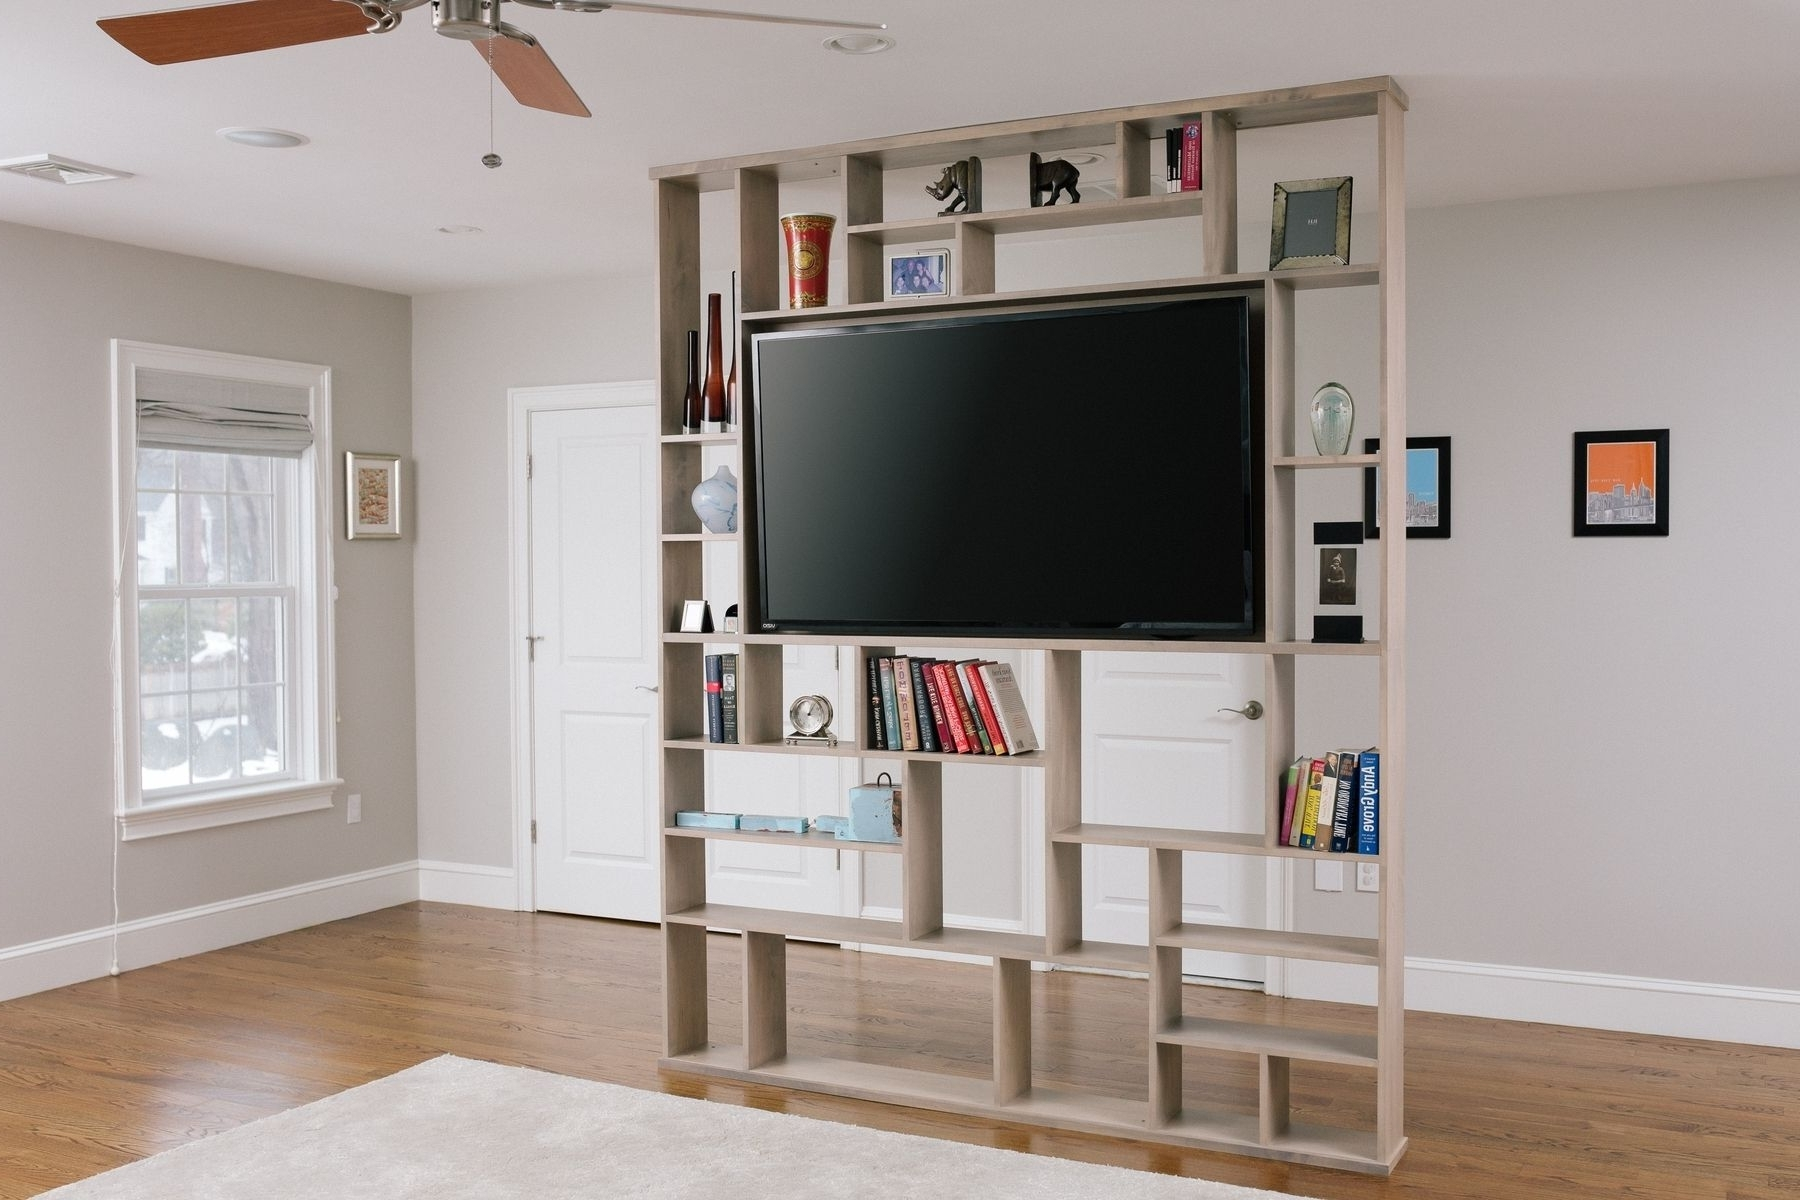 Favorite Tv Book Case Pertaining To Hand Crafted Lexington Room Divider / Bookshelf / Tv Standcorl (View 8 of 15)